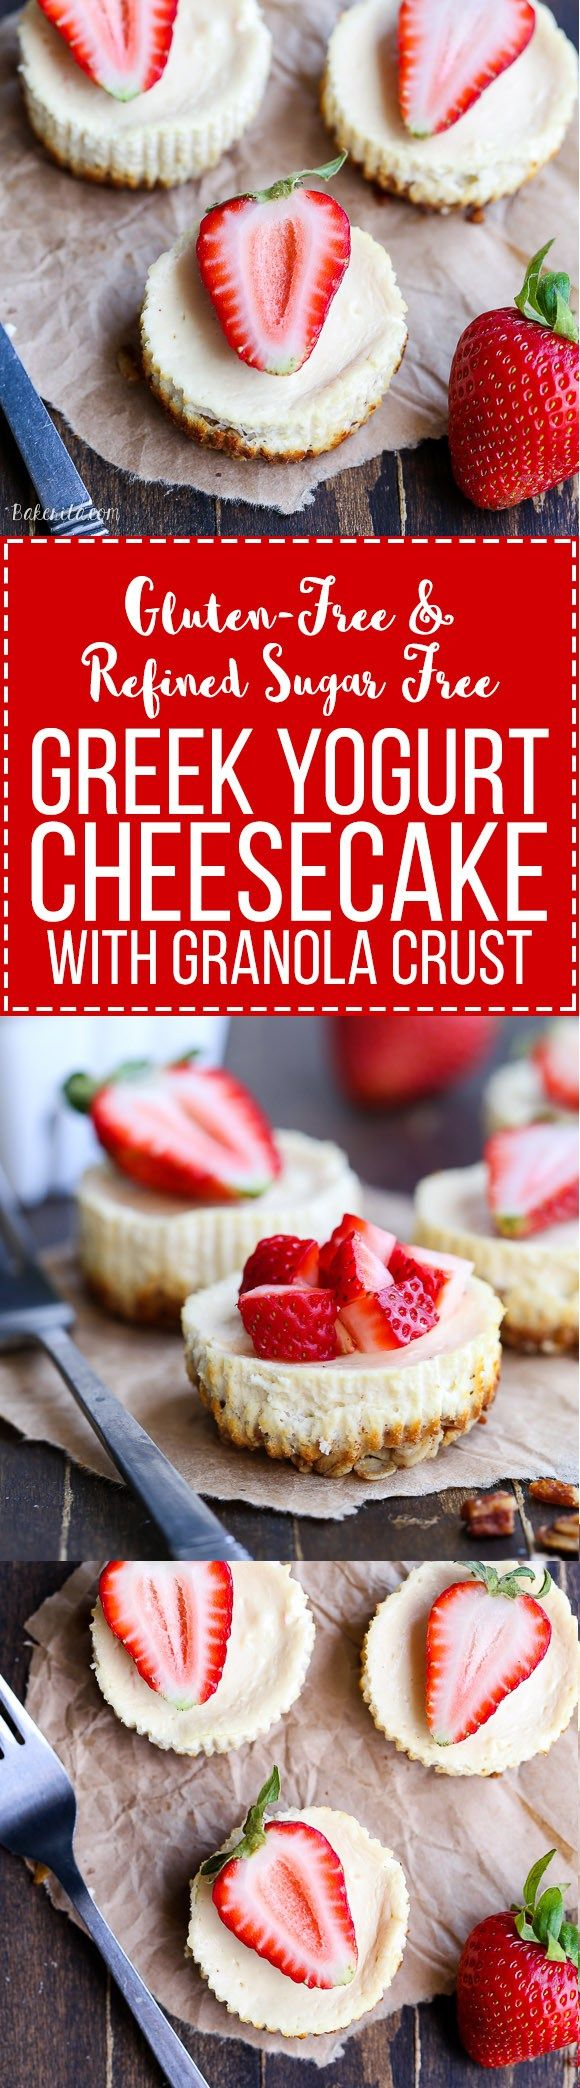 These Greek Yogurt Cheesecakes are smooth and creamy with a bit of tanginess and a crunchy granola crust. These gluten-free cheesecakes were delicious for breakfast topped with fresh berries, and they(Summer Bake Greek Yogurt)